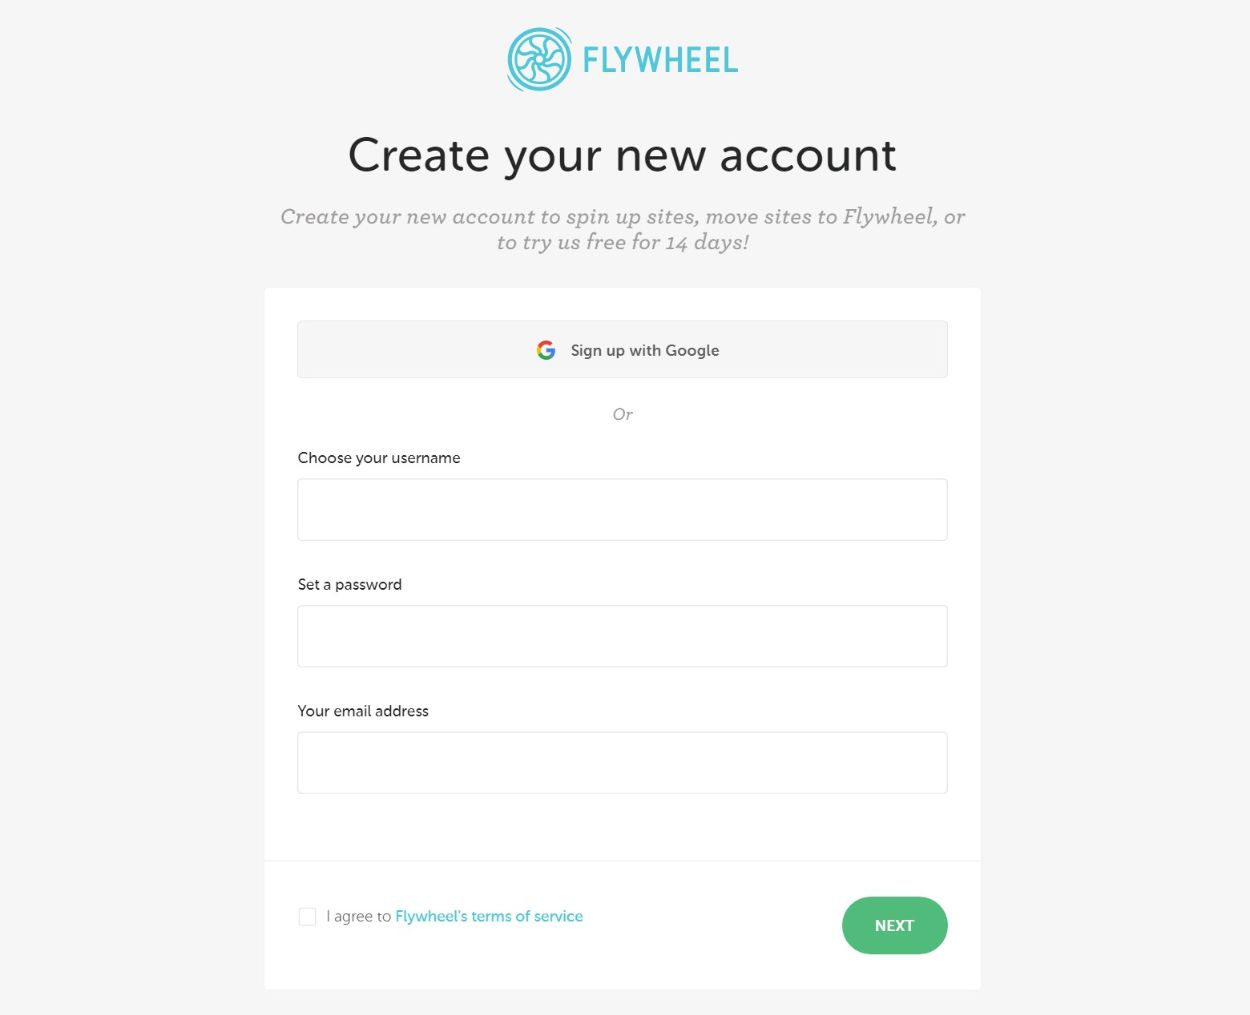 Enter Flywheel profile information